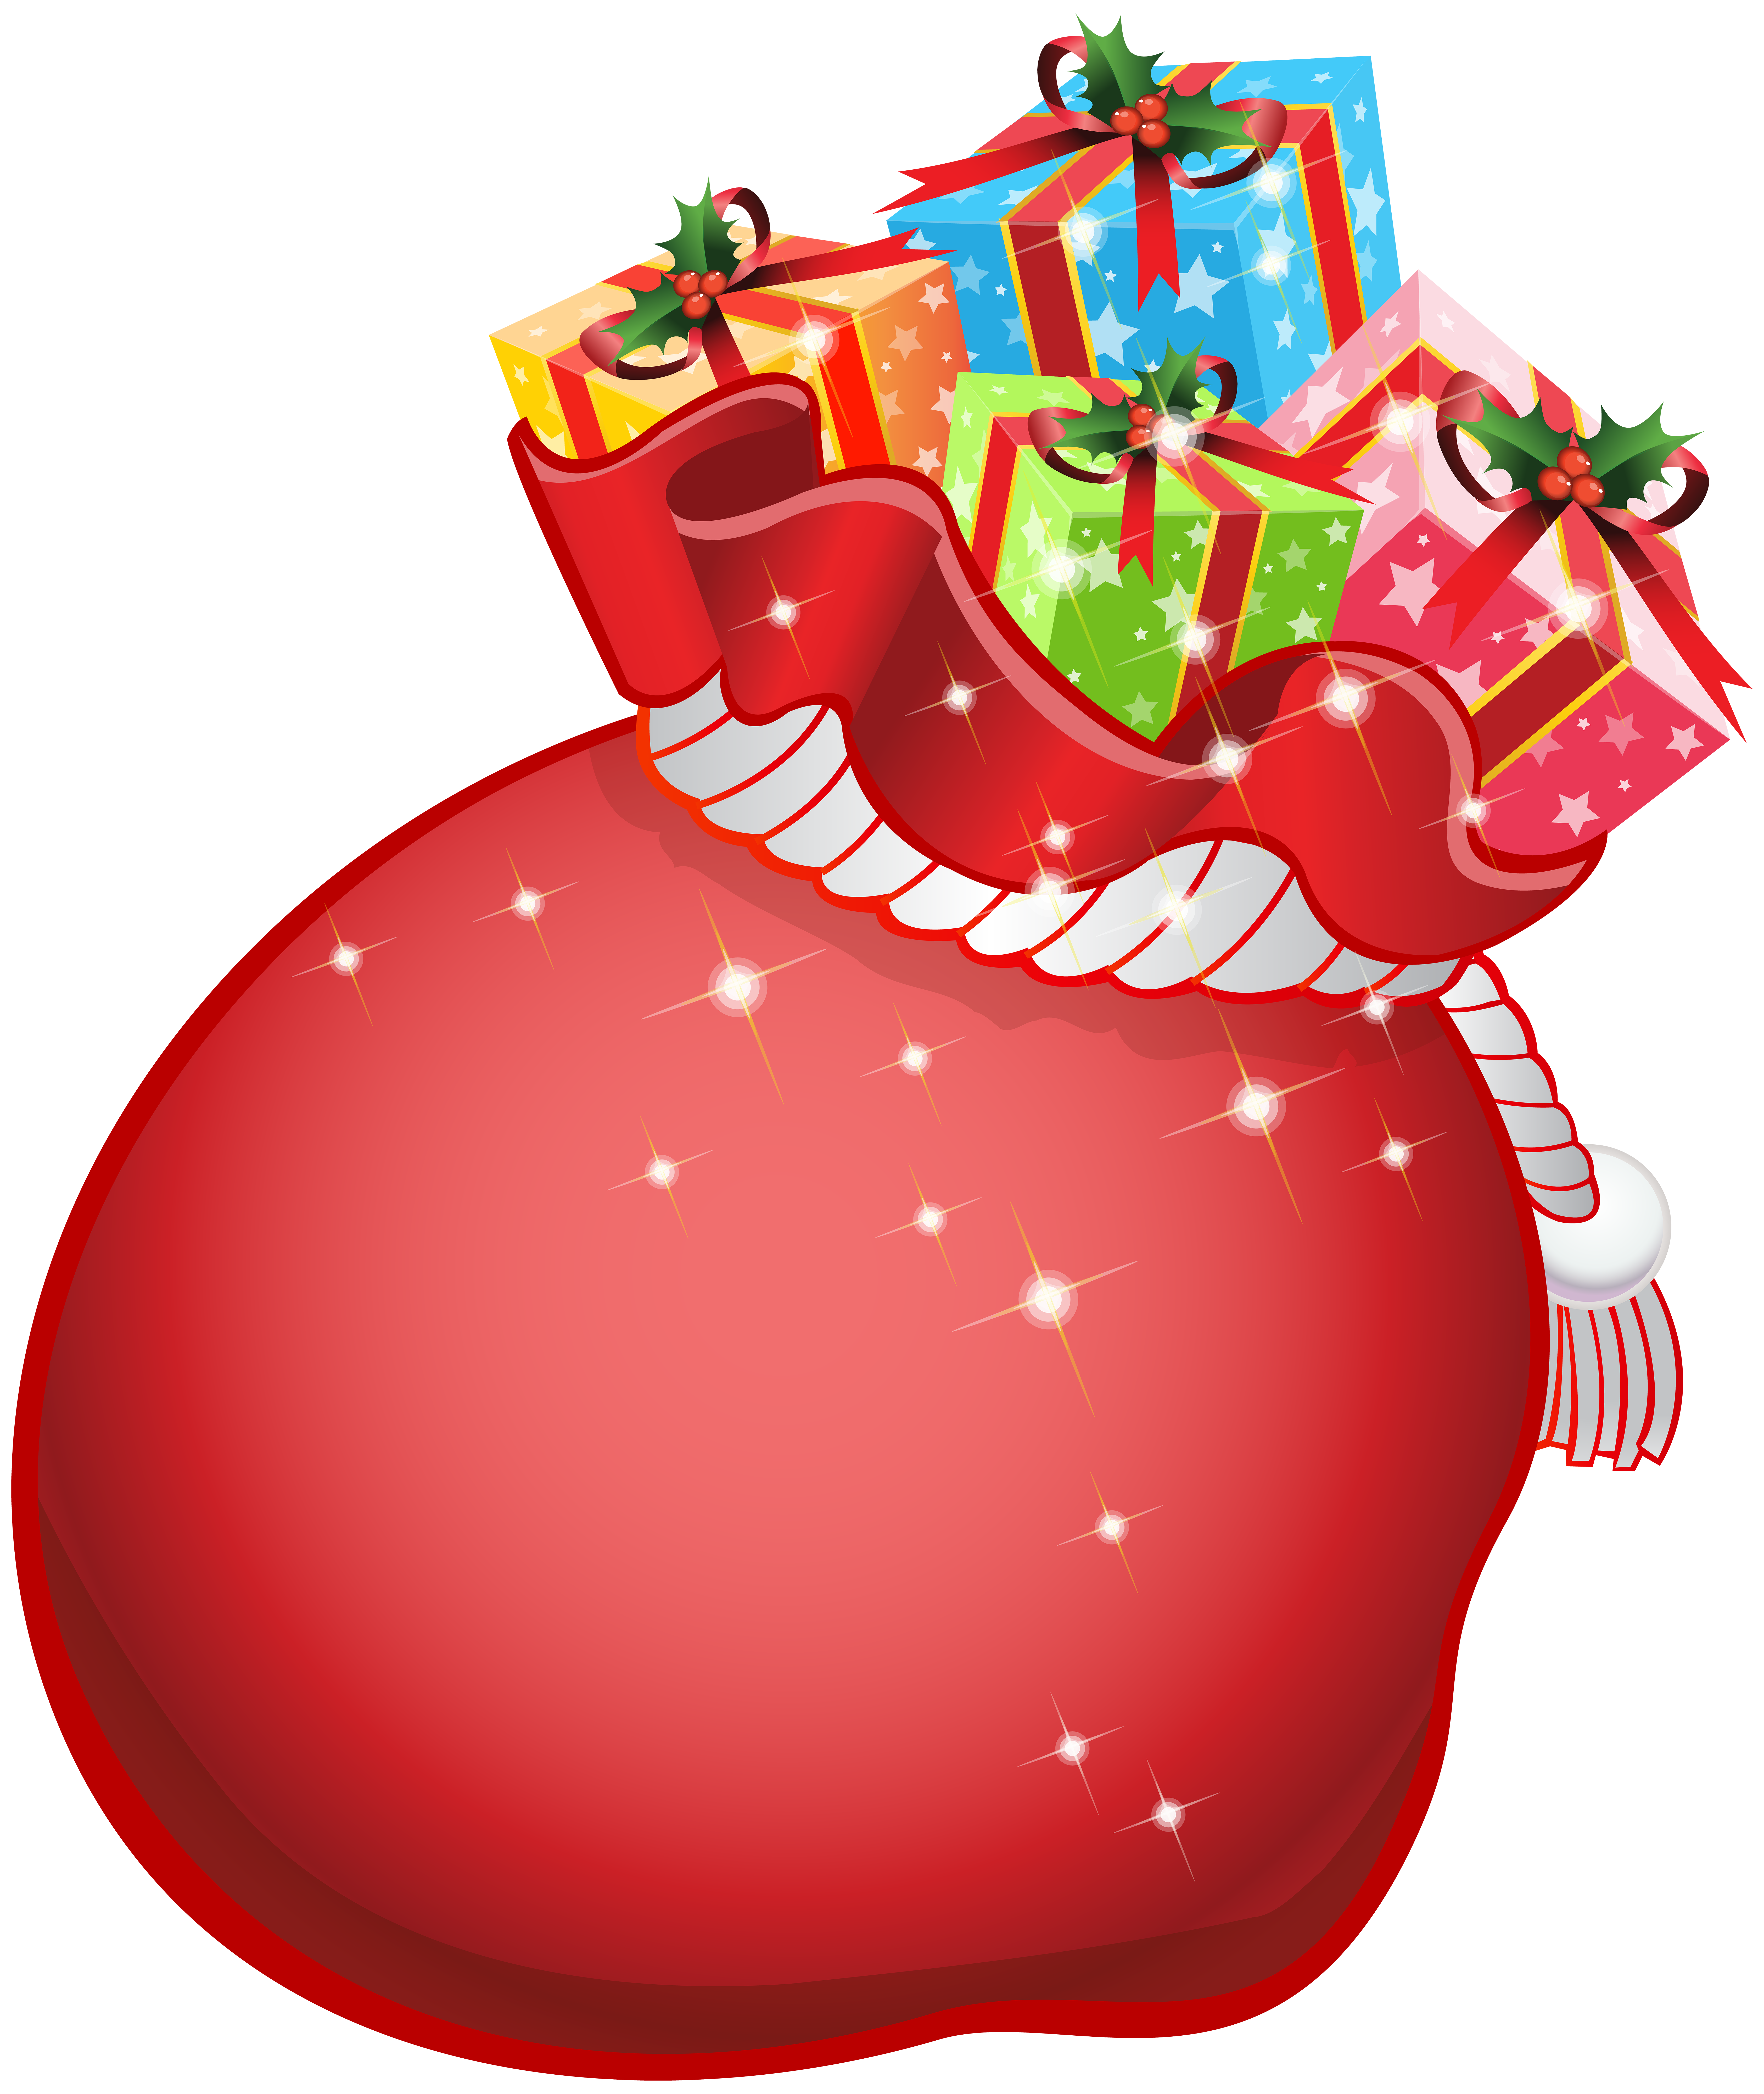 Santa bag png. With gifts transparent clip